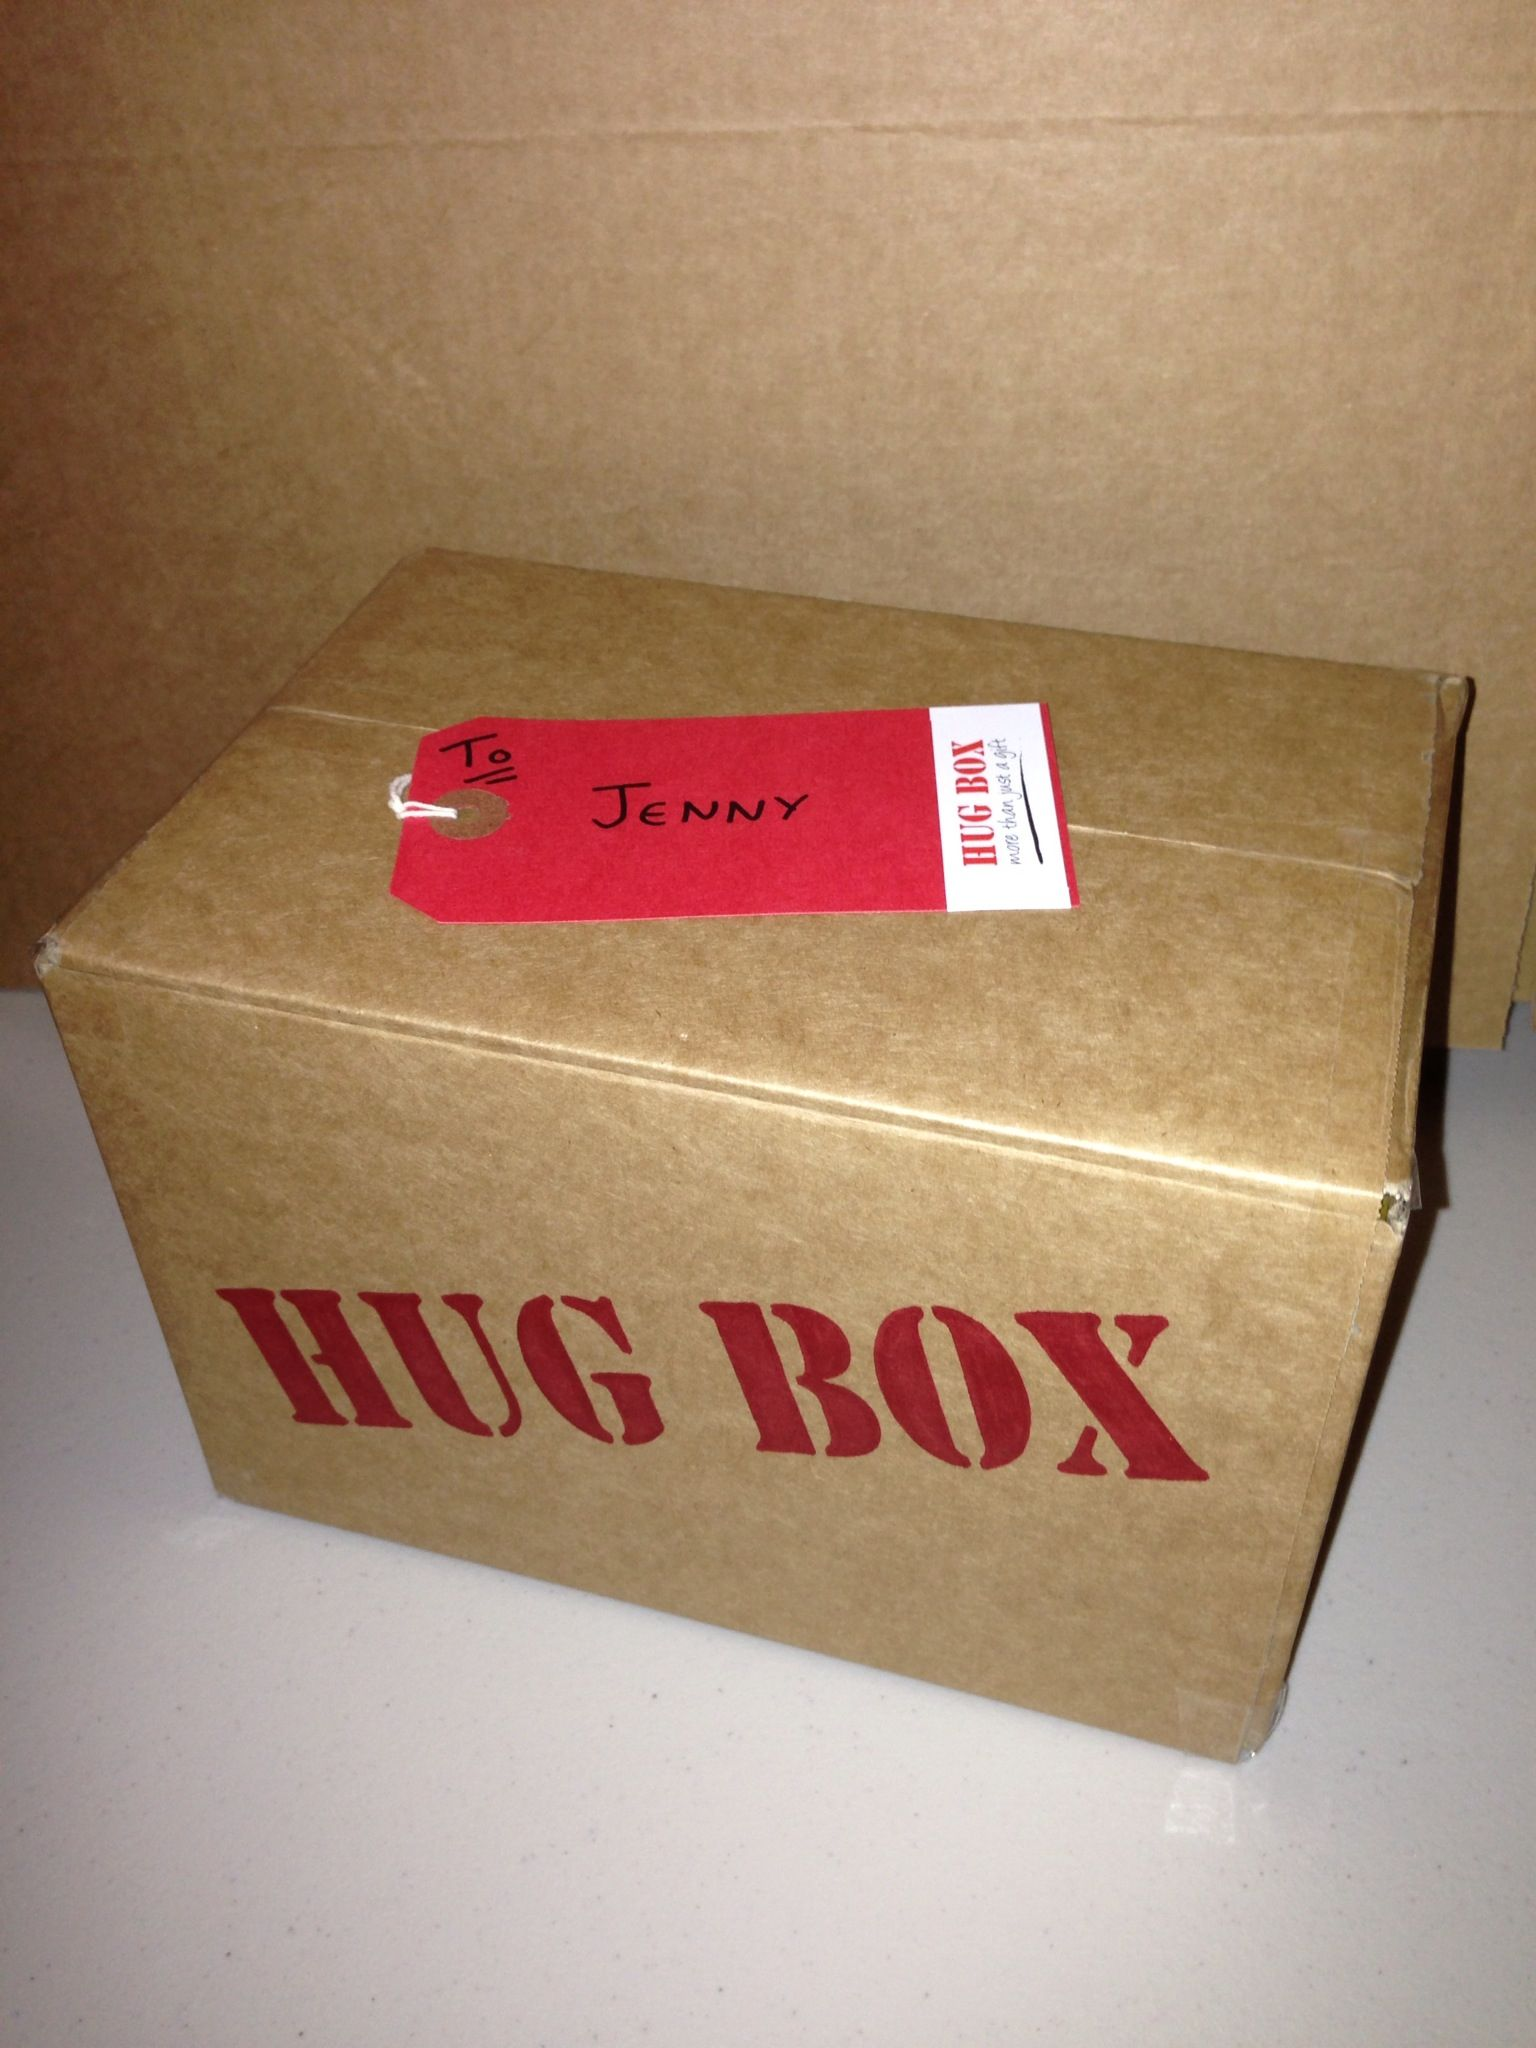 Hug Box Ready For Despatch Sweets Treats Chocolates Delivered Hampers Gifts Birthdays Parties Weddings Get Well Congratulations HugBoxcouk